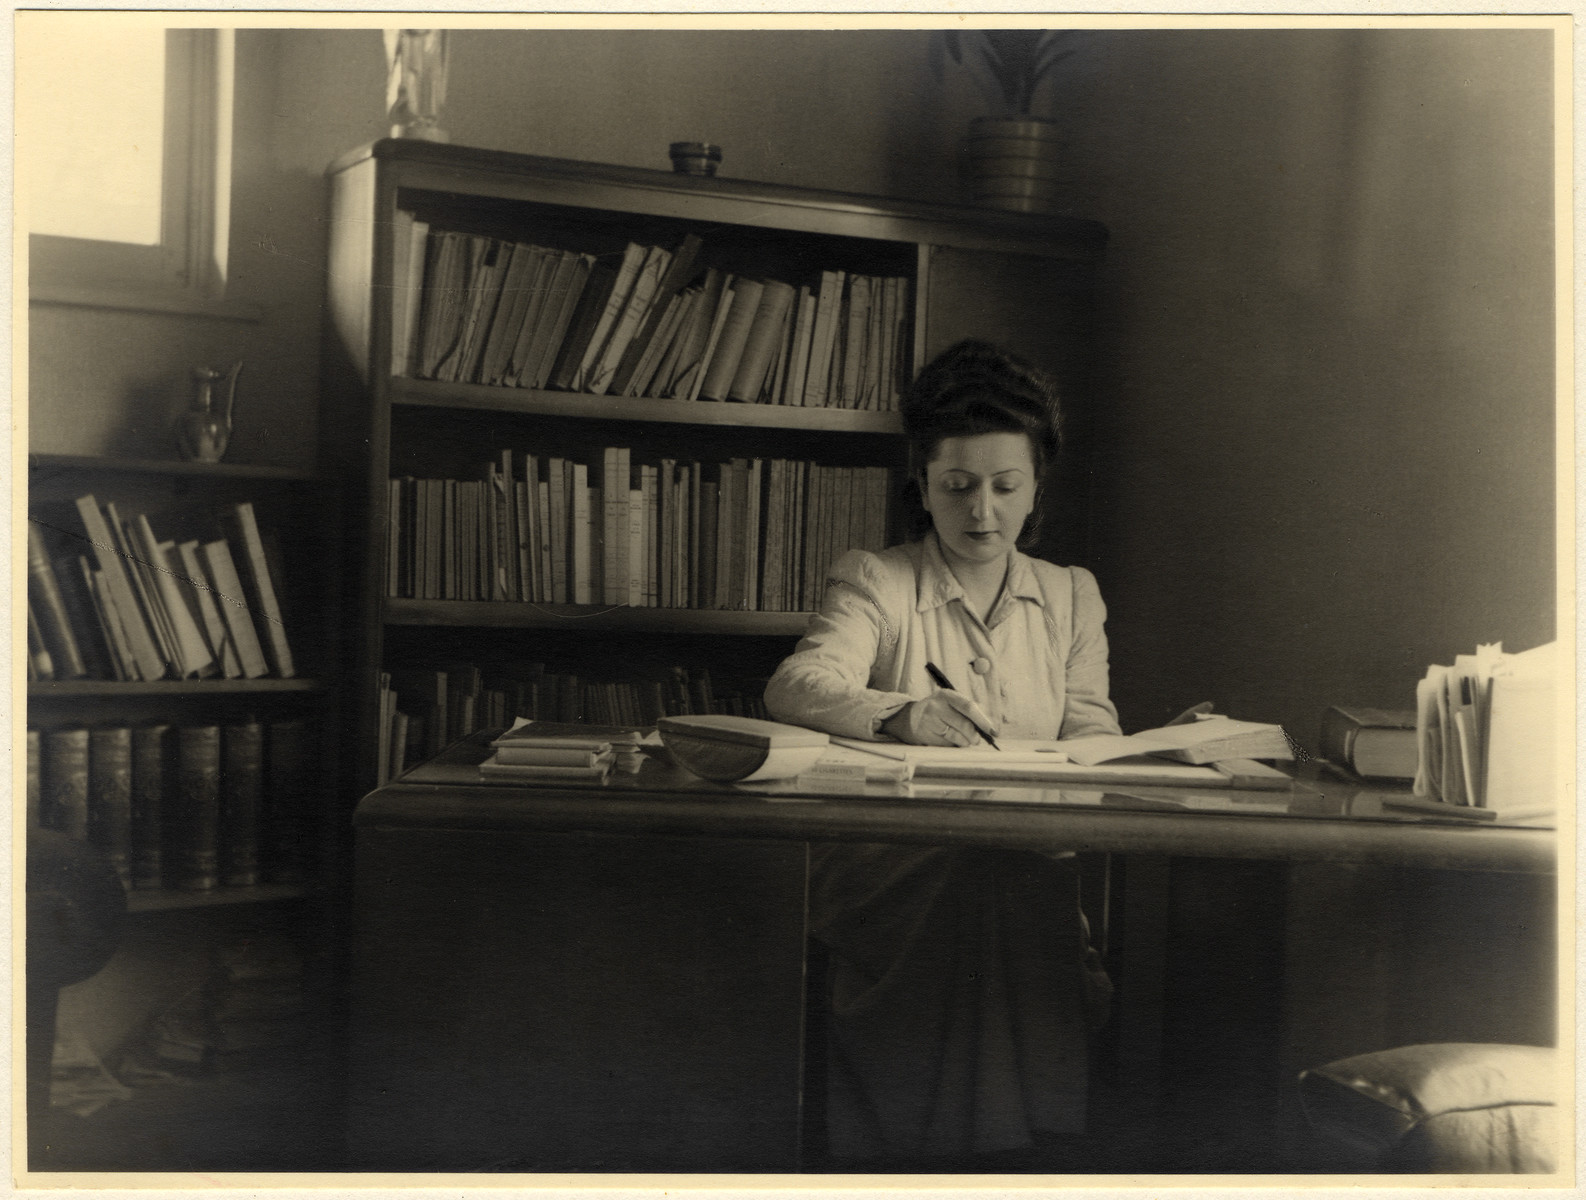 Jewish rescuer, Fela Perelman, works at her desk.